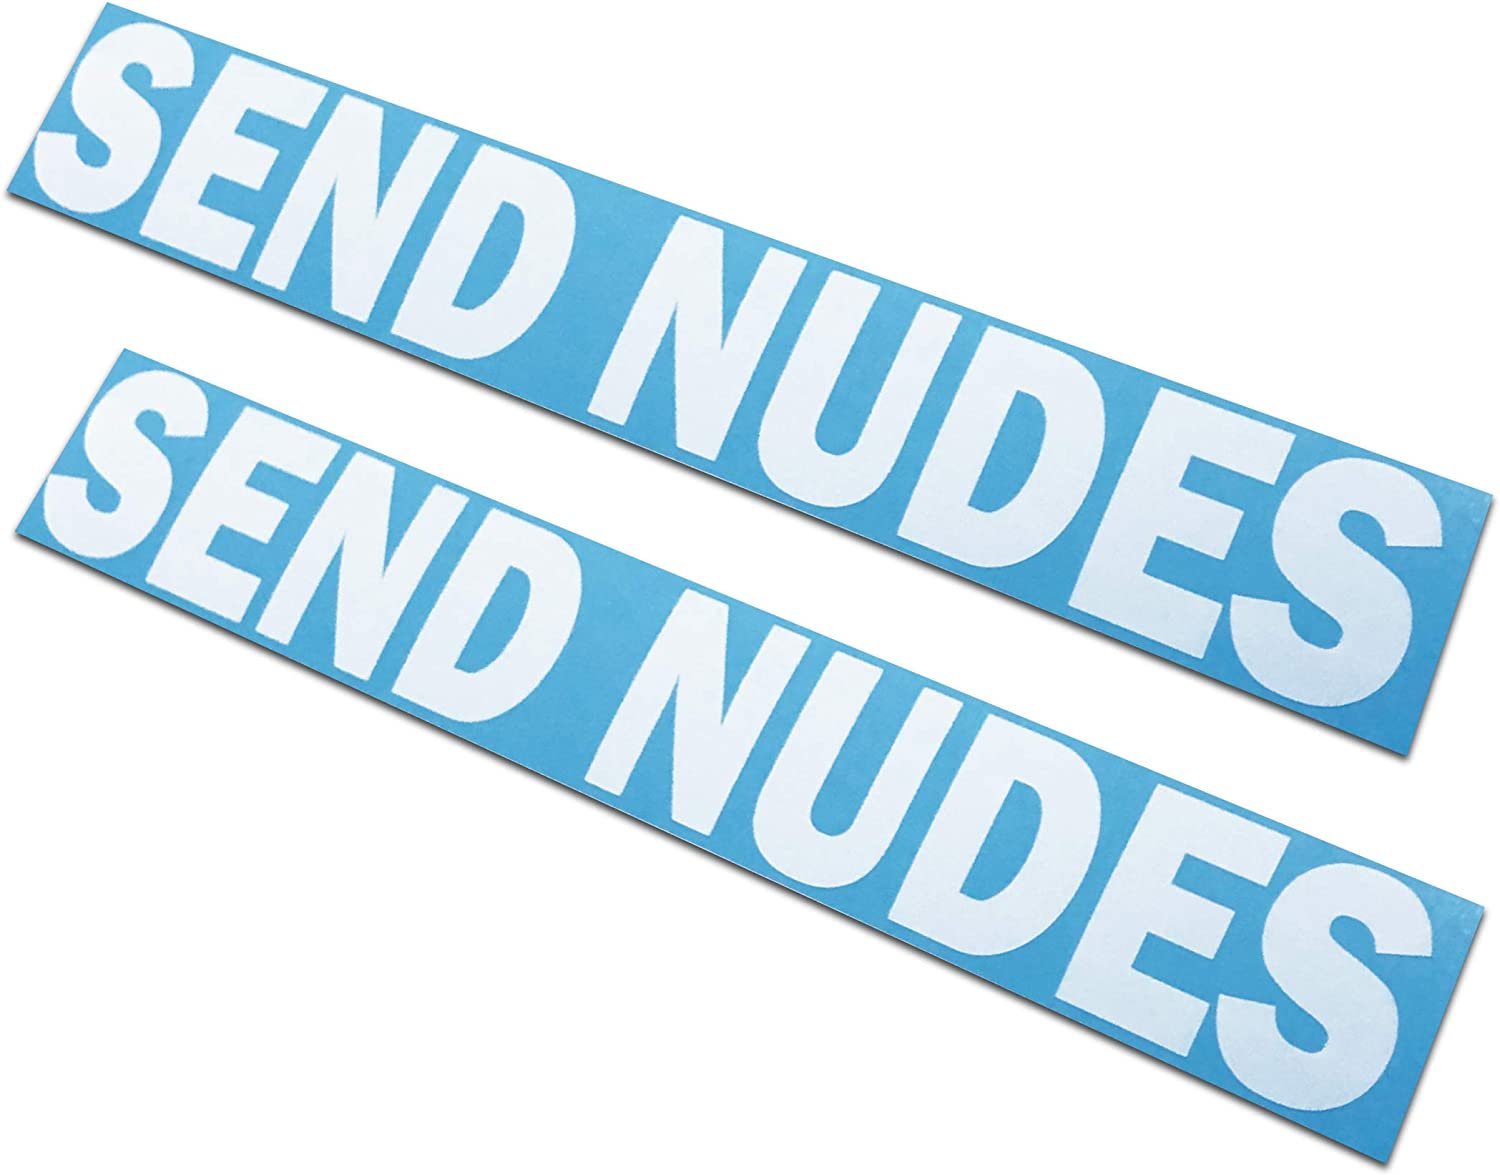 Send Nudes Decals//Stickers 2x11 2 Pack